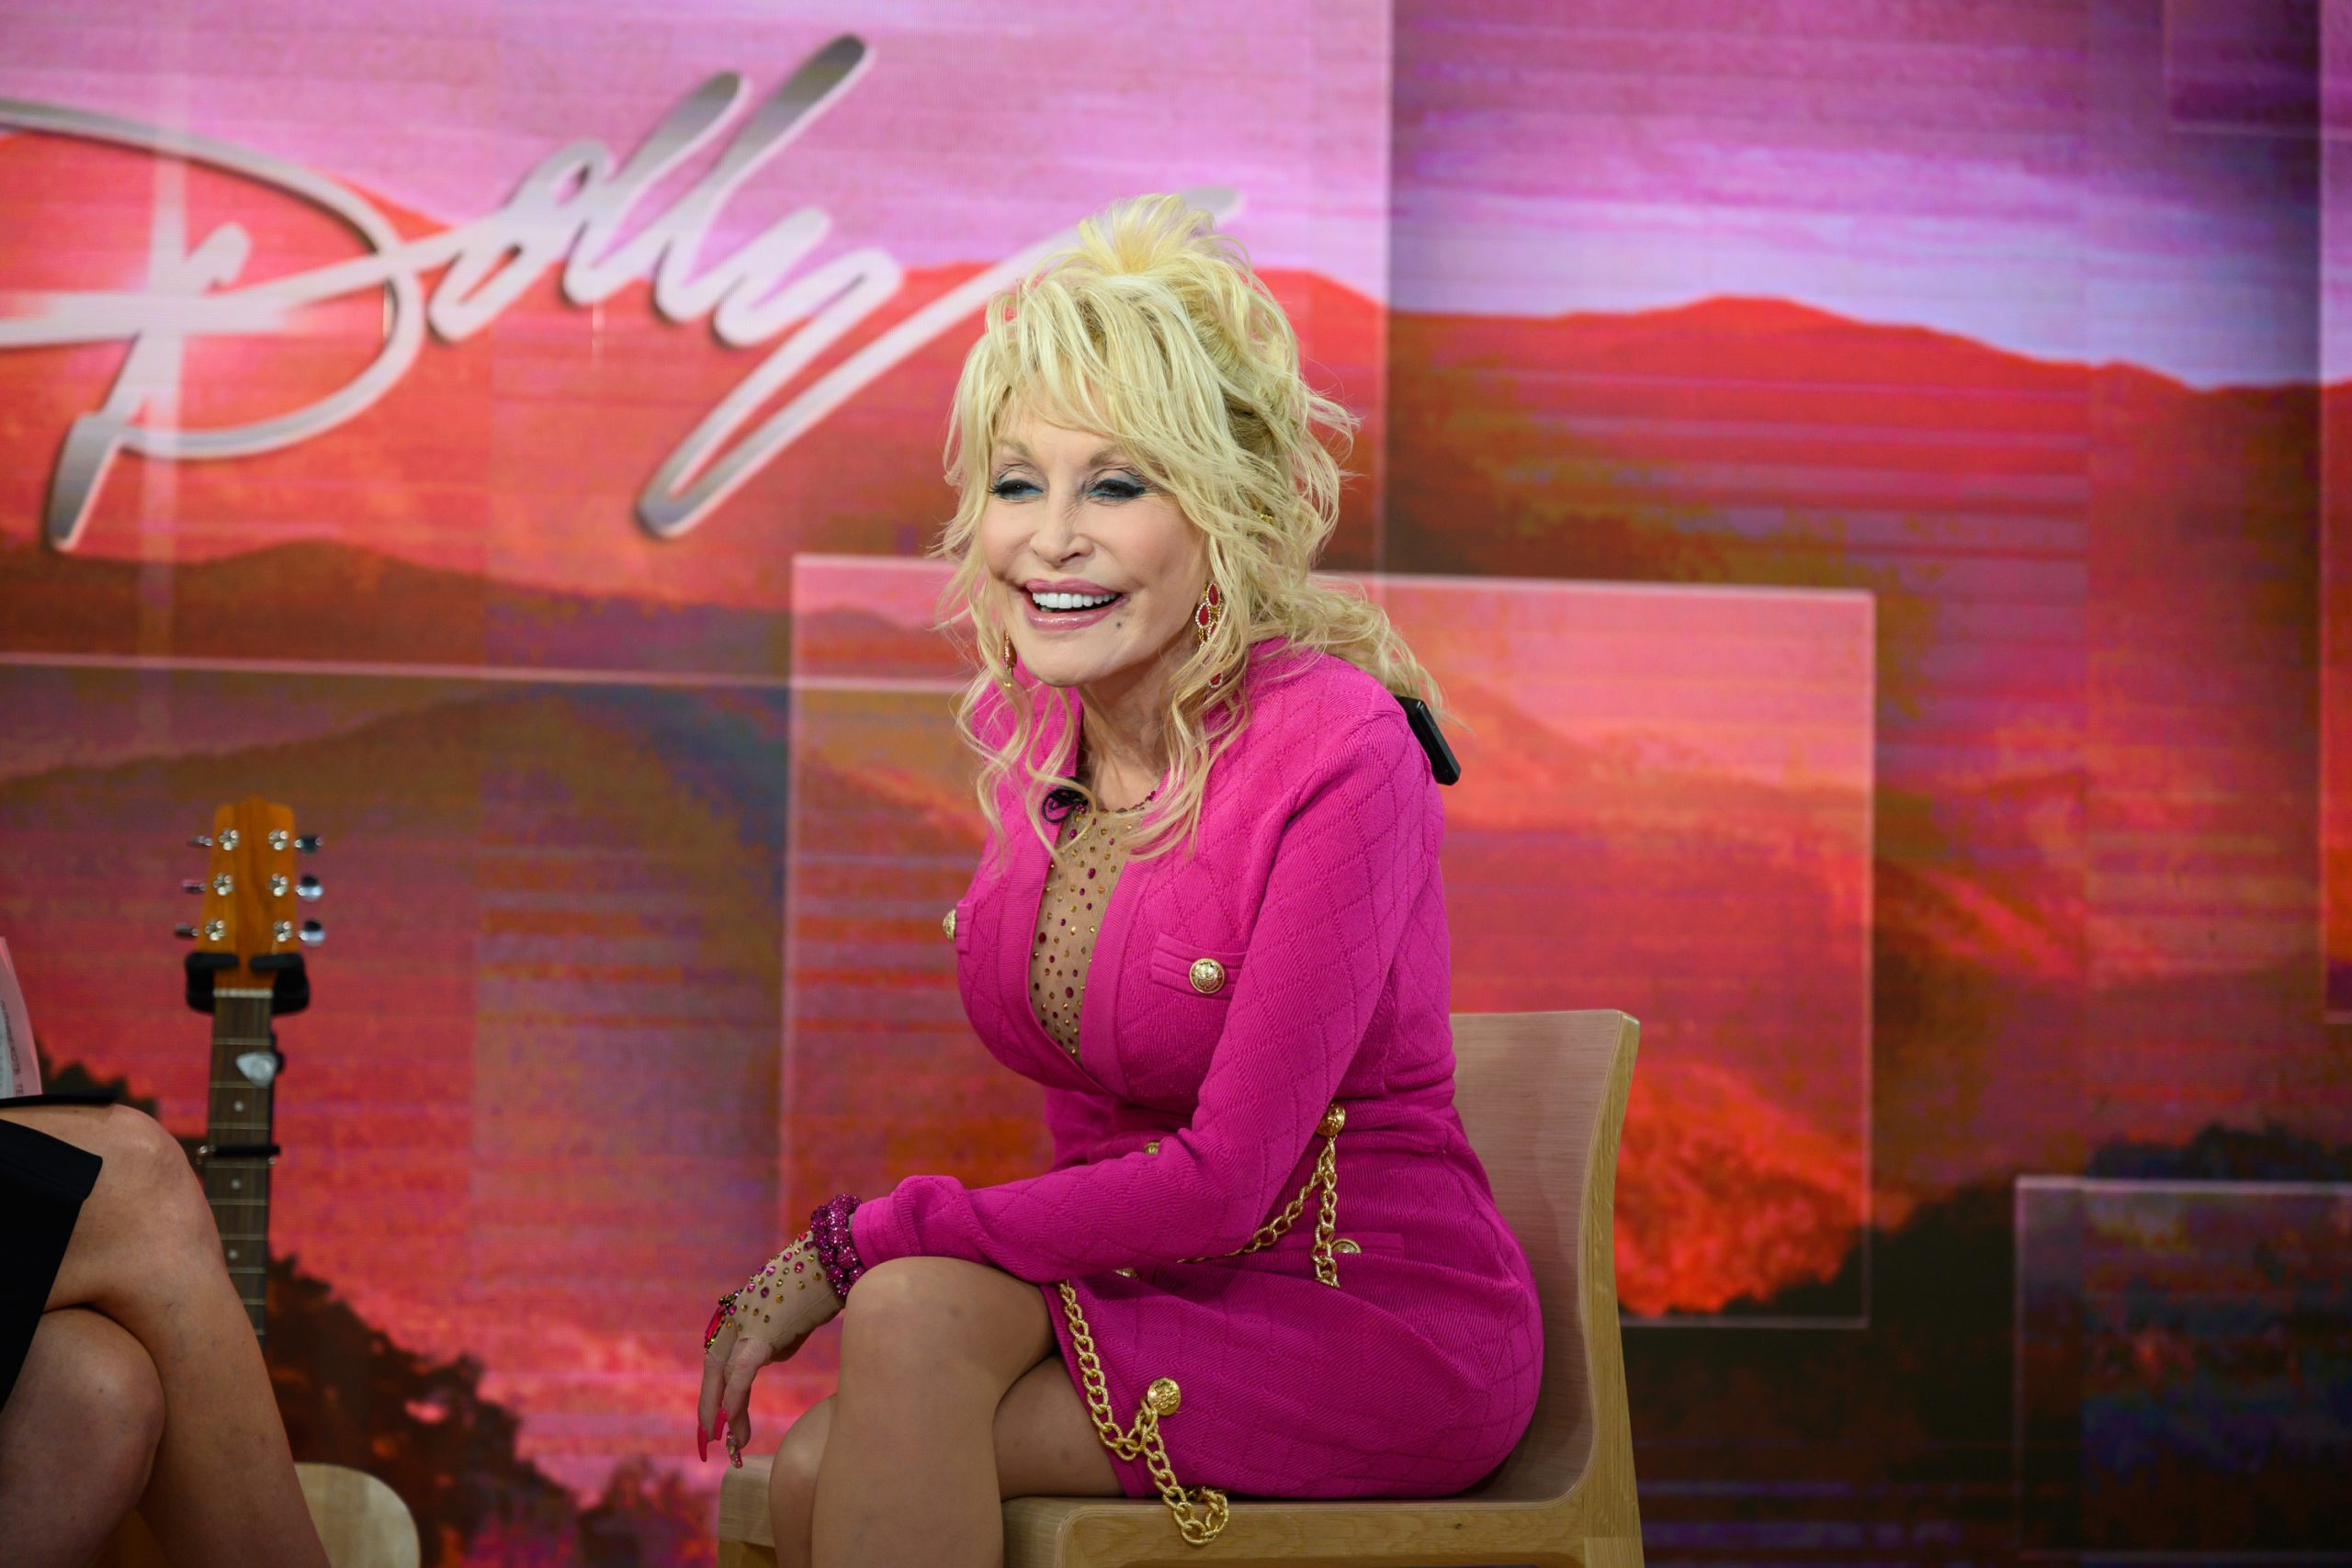 Dolly Parton on the TODAY show in a pink dress and full face of makeup